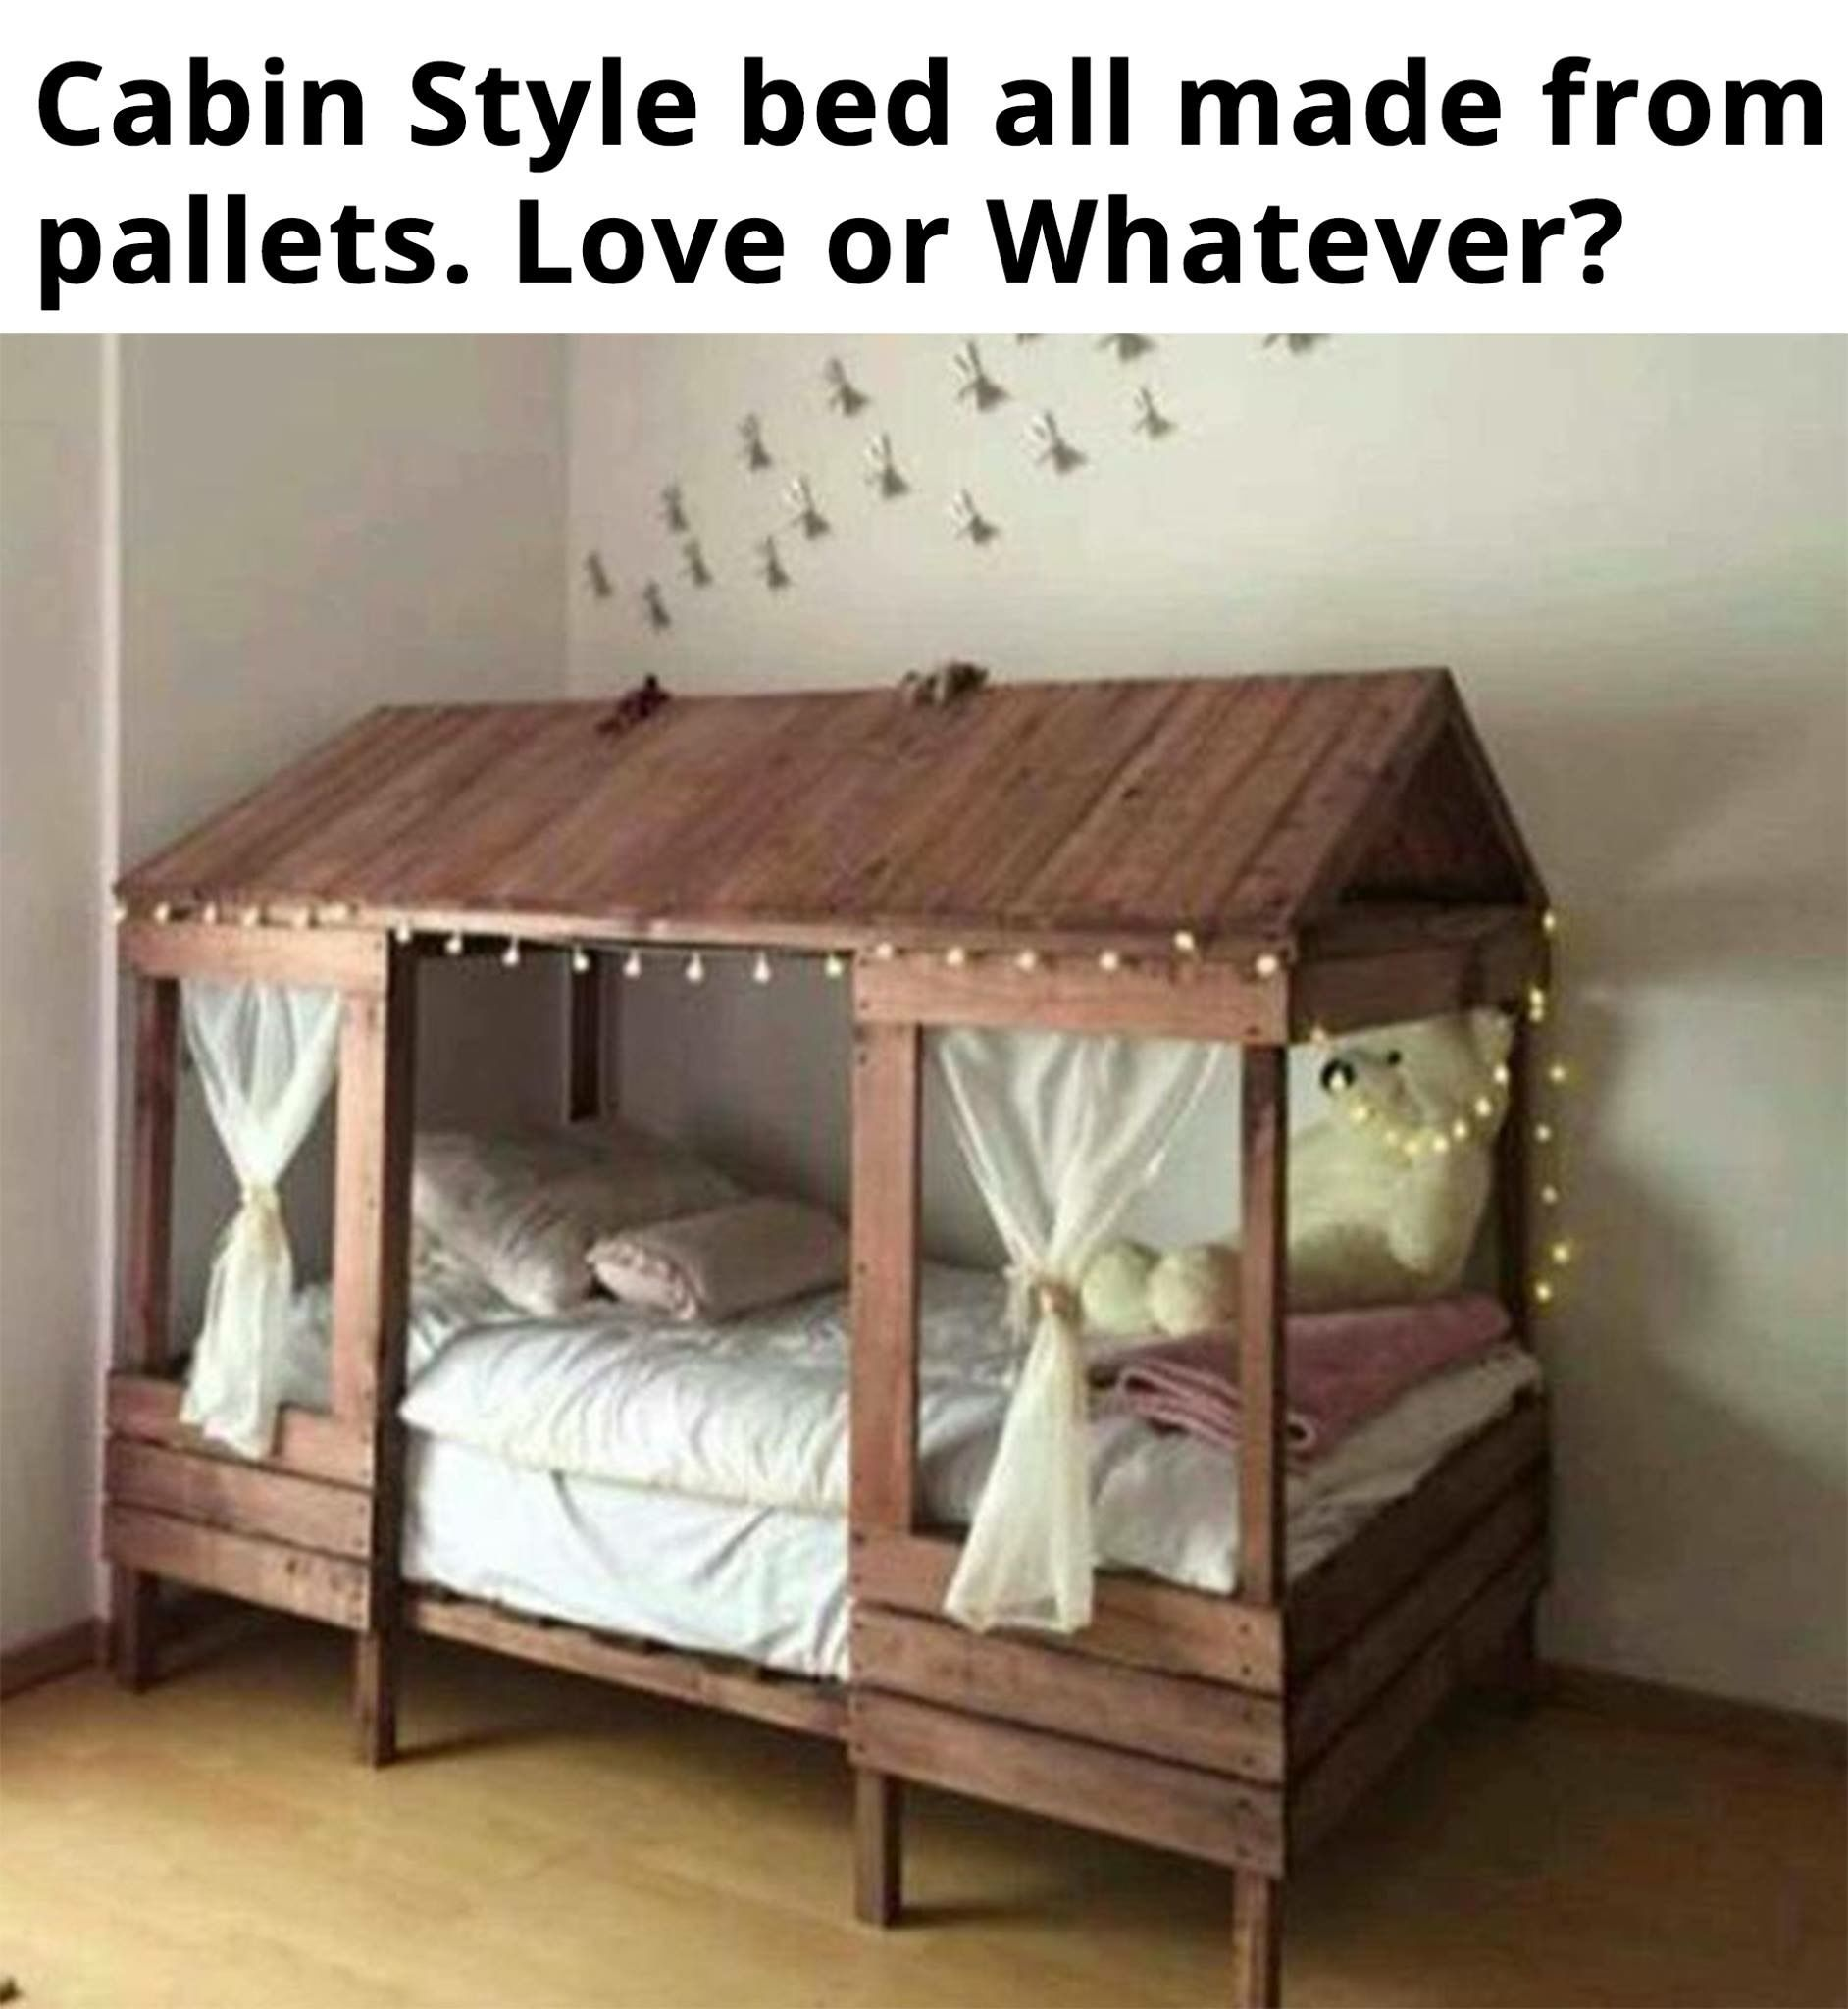 Diy Kids Beds Love This Idea For A Toddler Bed Looks Simple Enough To